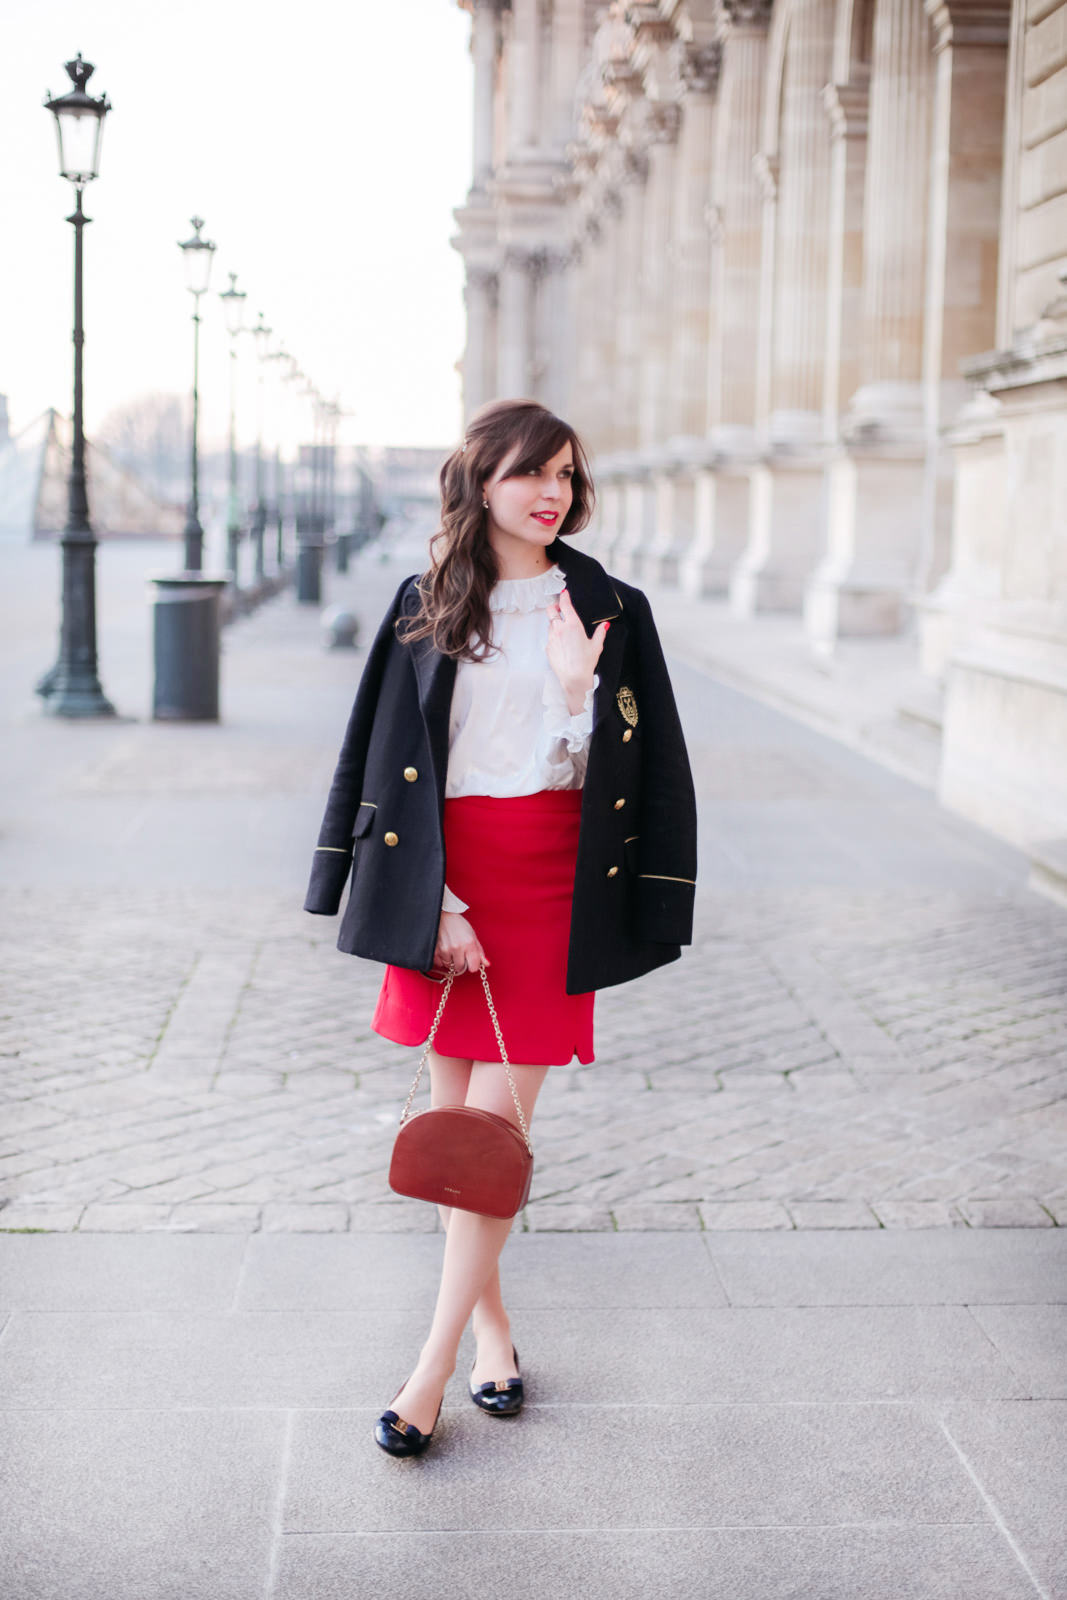 Blog-Mode-And-The-City-Looks-3-tenues-3-collants